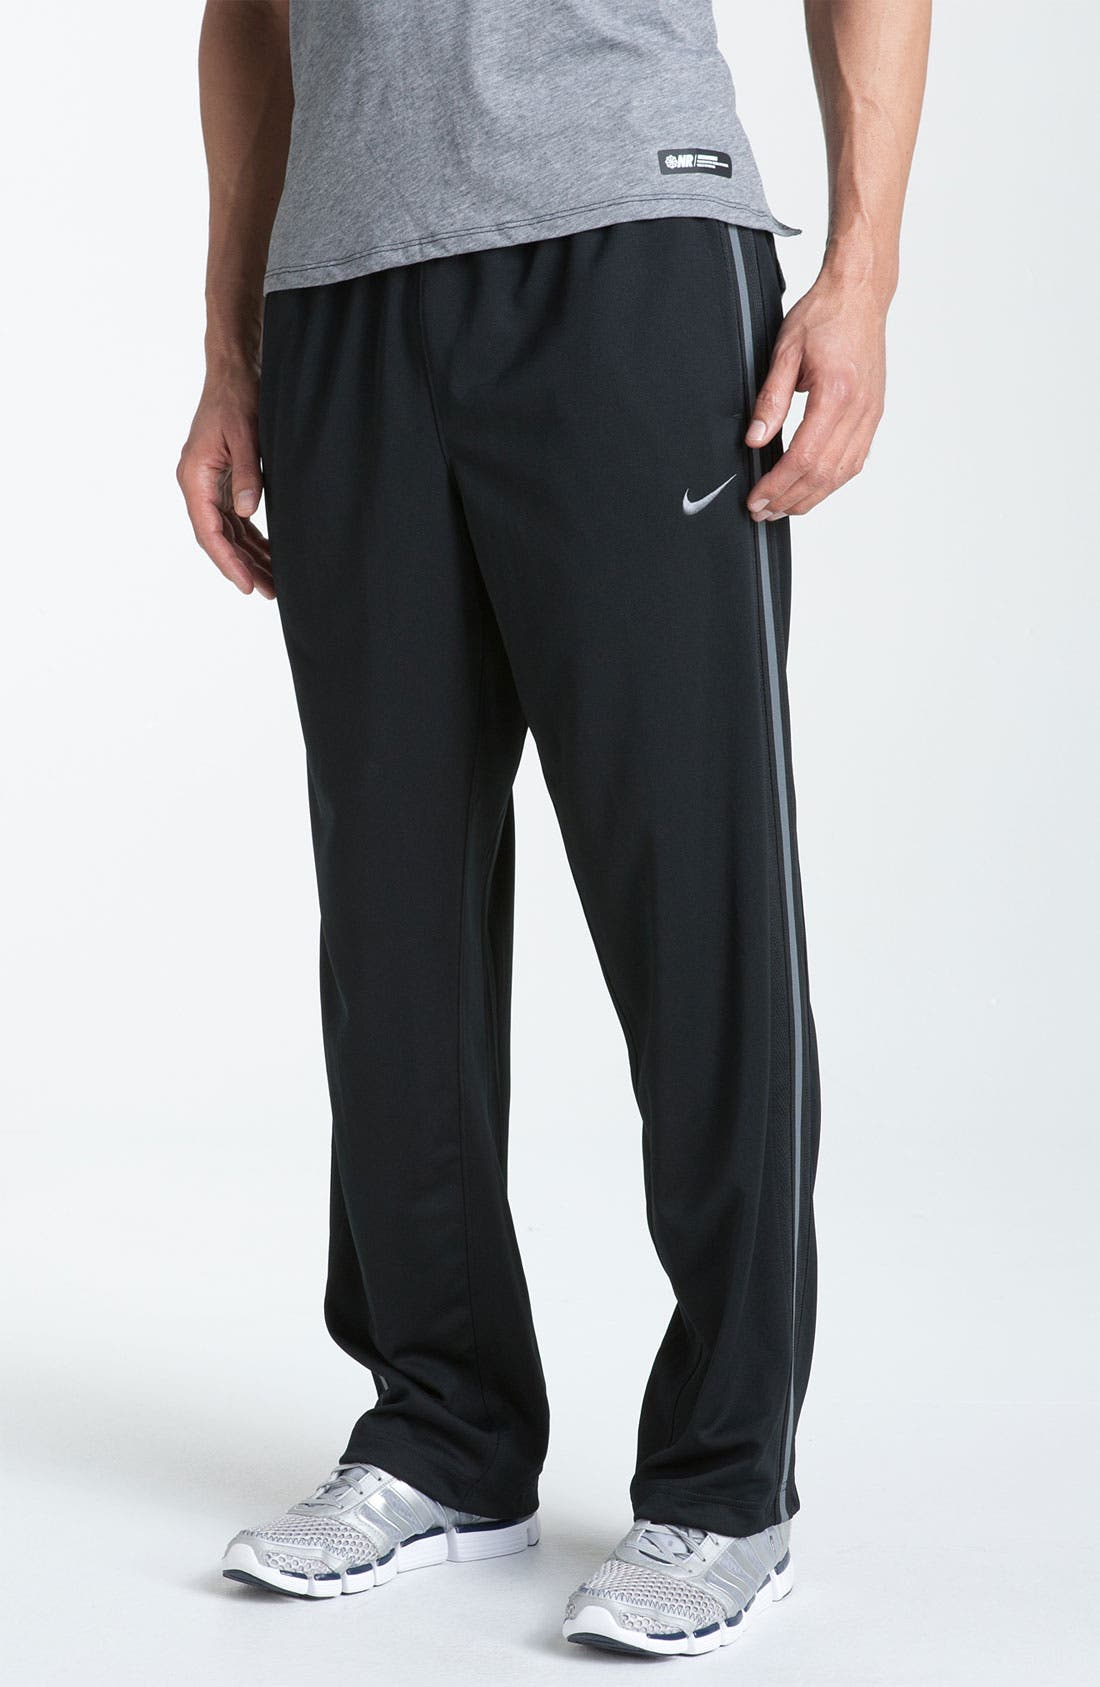 Alternate Image 1 Selected - Nike 'Epic' Dri-FIT Training Pants